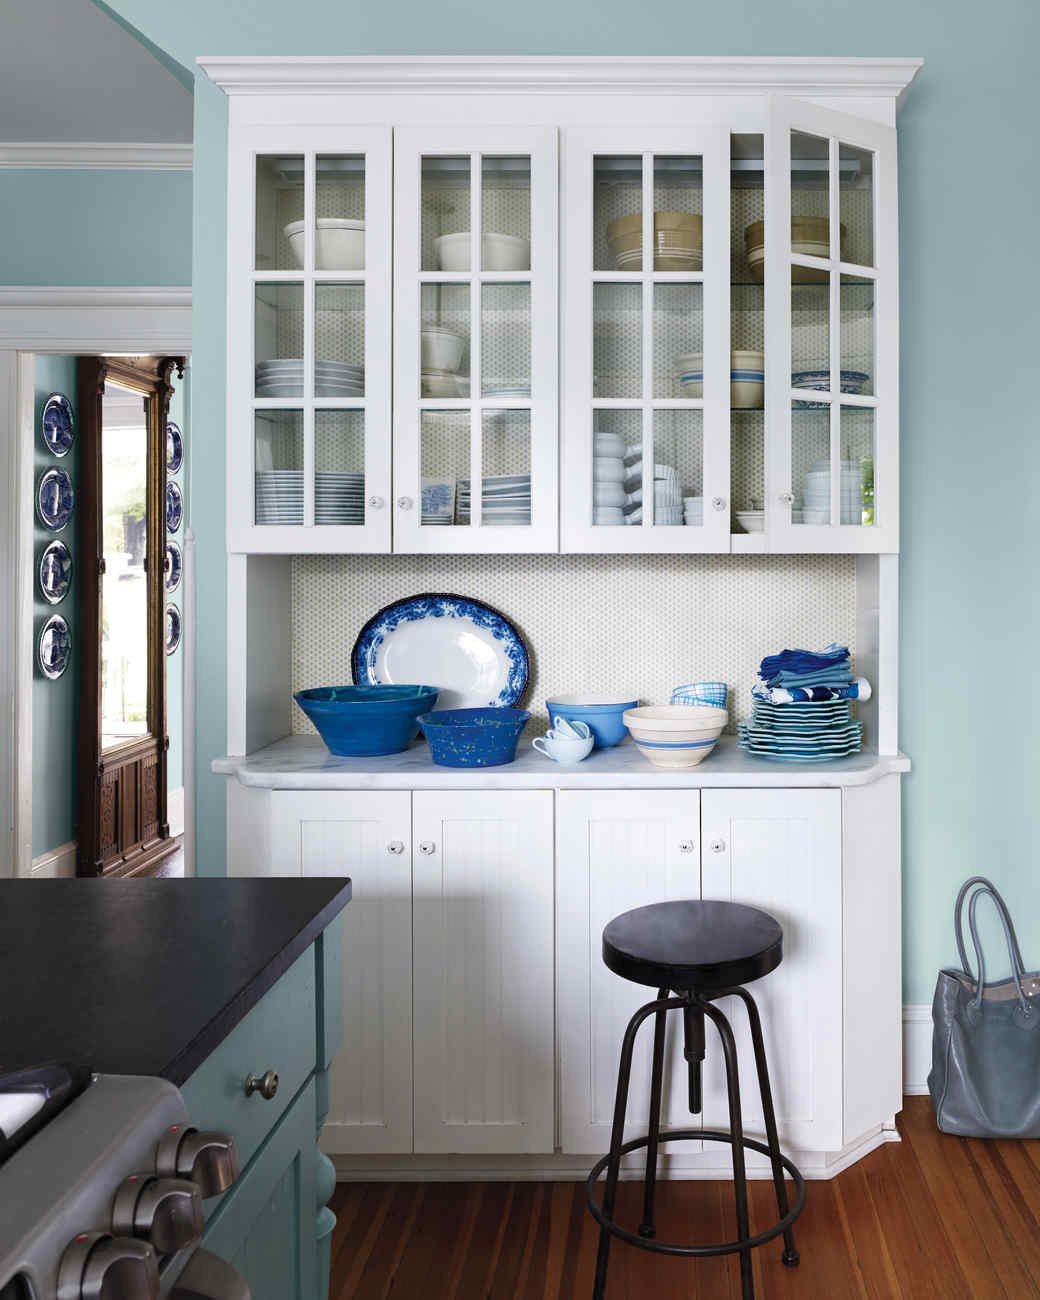 kitchen0199189-md110699_vert 12 Fashion Trends of Summer 2019 and How to Style Them